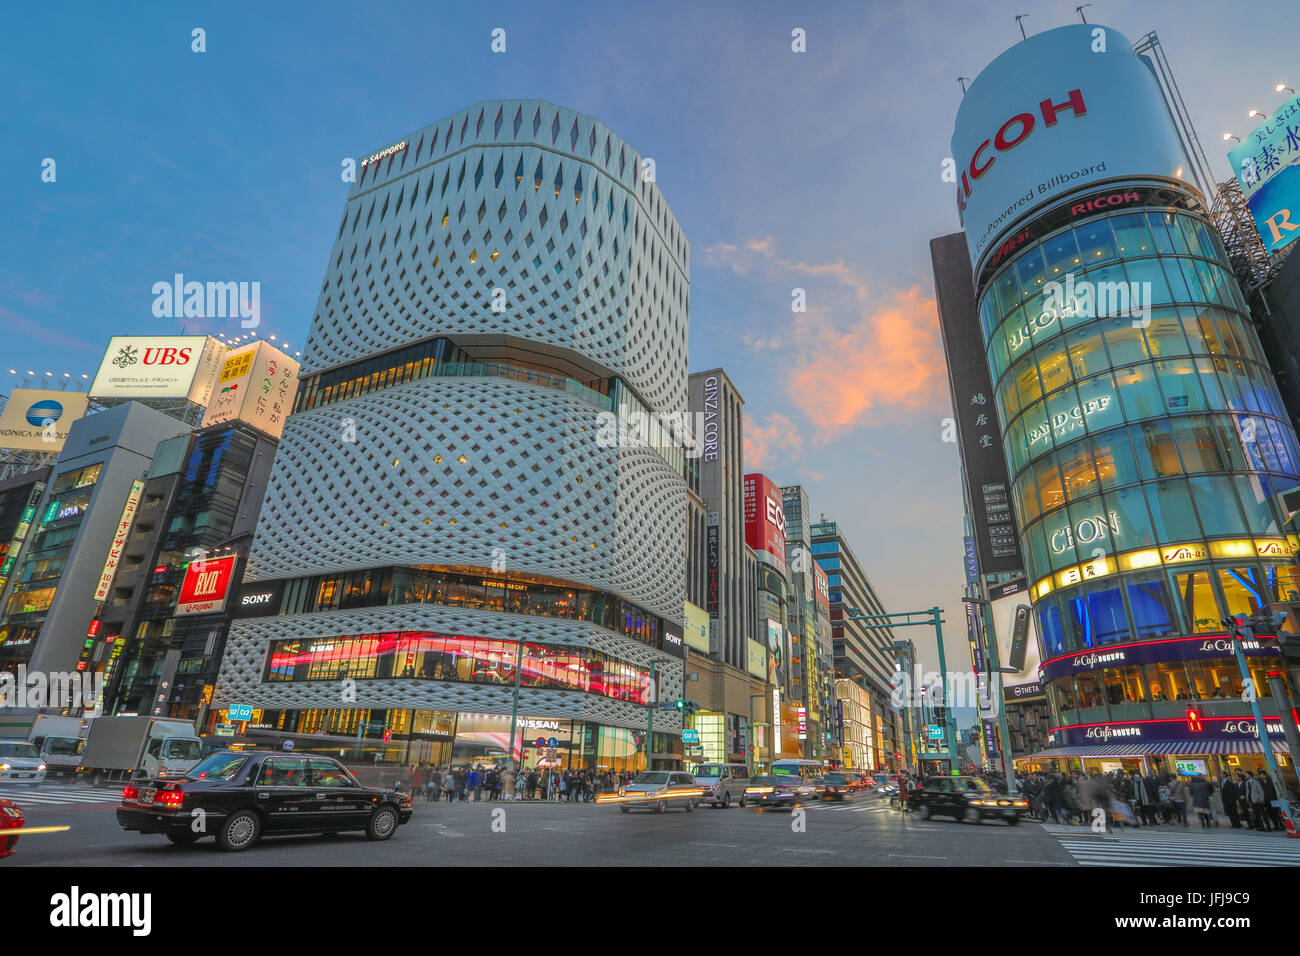 Japan, Tokyo City, Ginza area, Chuo and Harumi Avenues crossing. - Stock Image